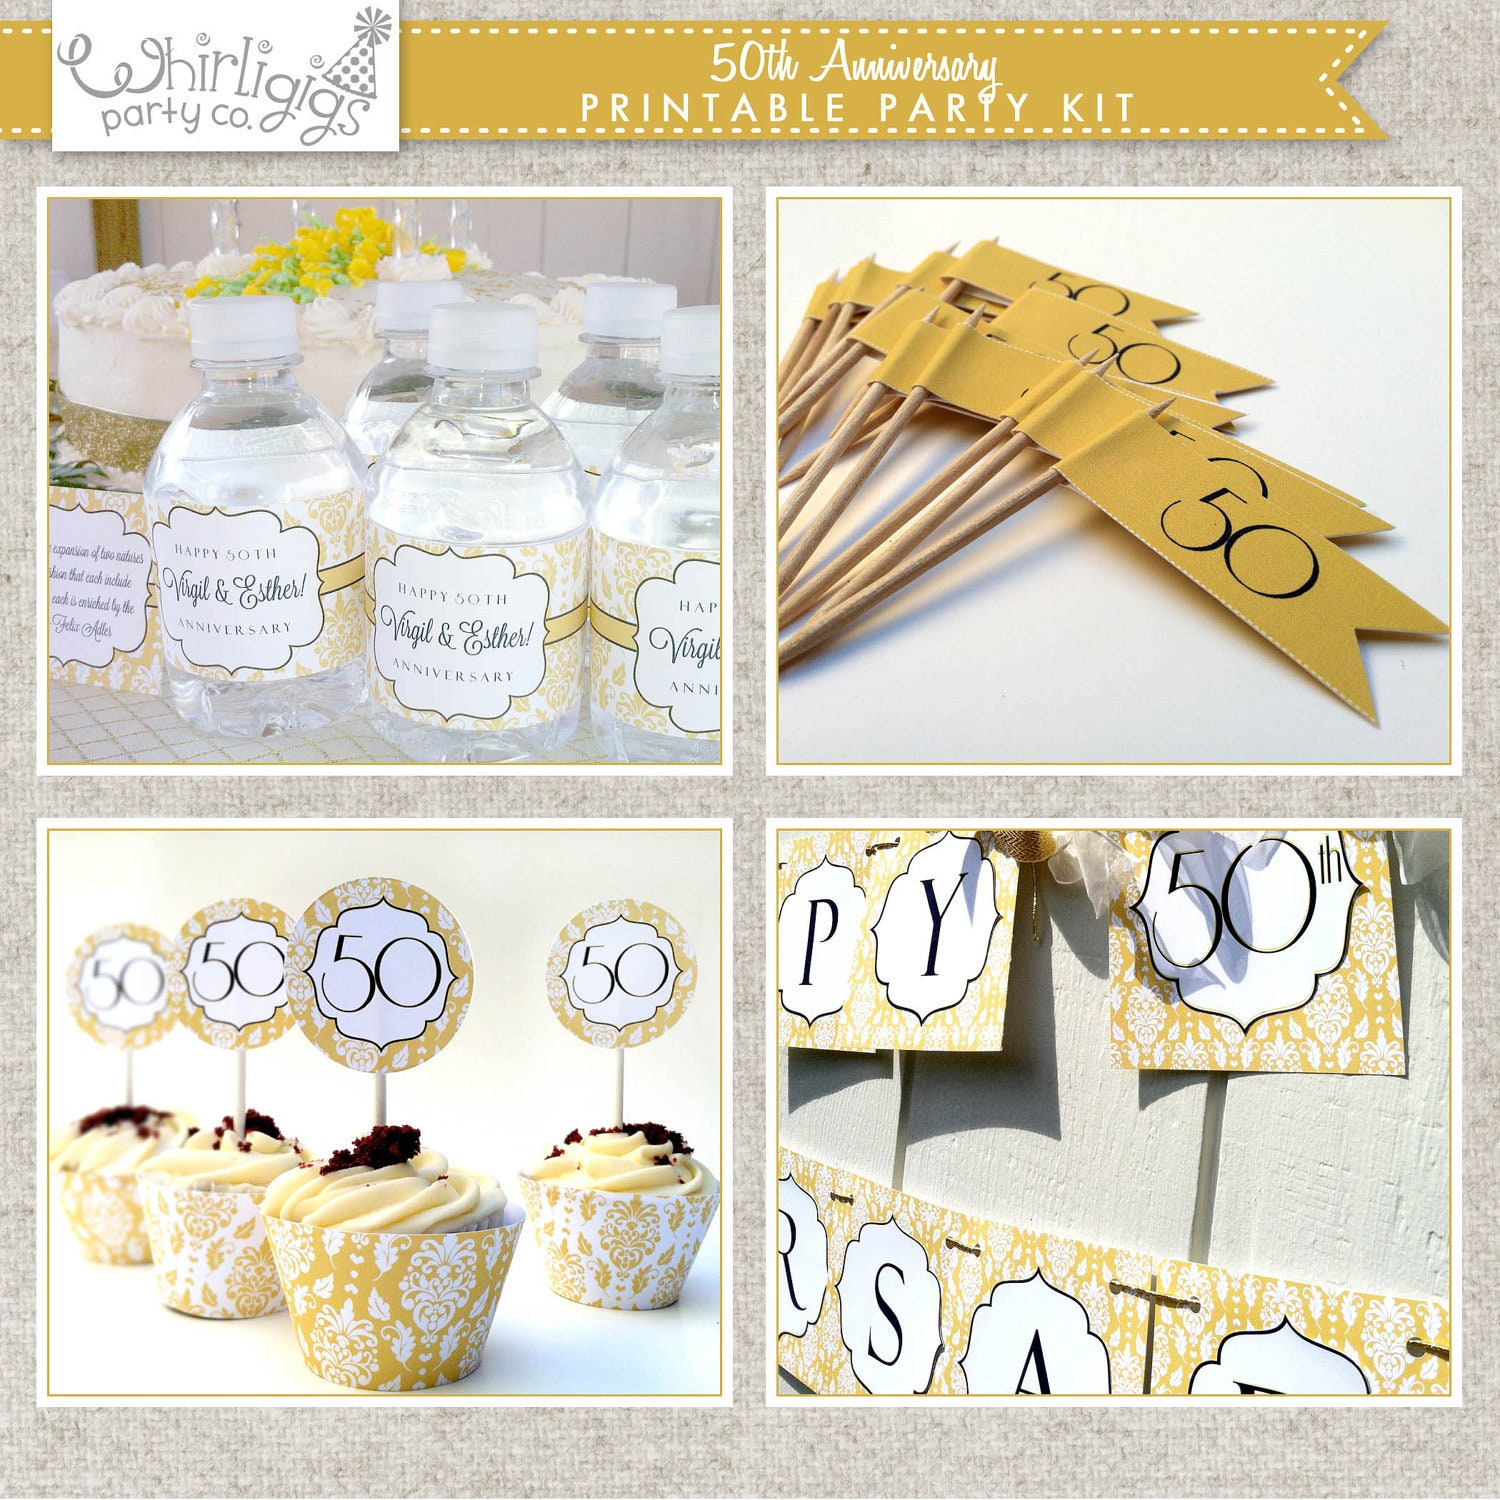 50th Wedding Anniversary Gifts Diy : 50th Wedding Anniversary Diy Decorations Printable 50th anniversary